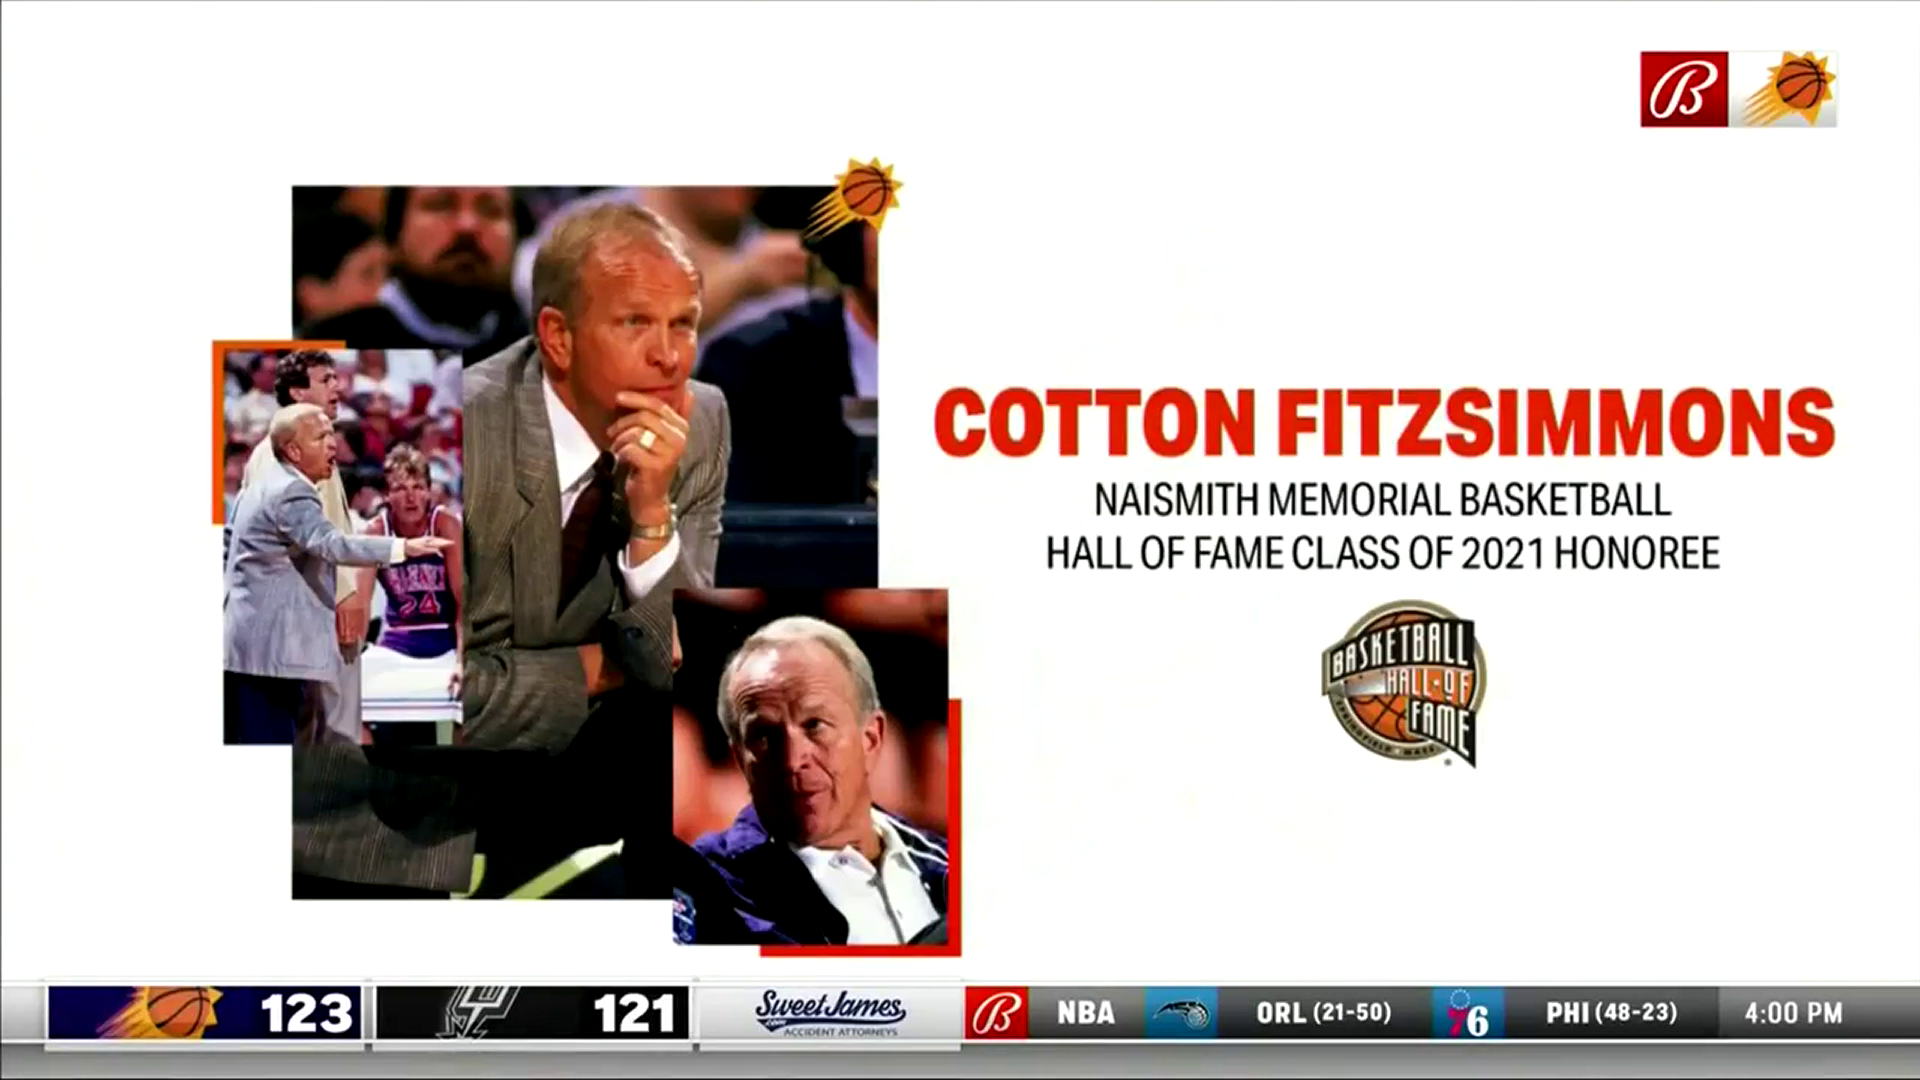 JoAnn Fitzsimmons Joins Suns Broadcast: Cotton Fitzsimmons to be Enshrined in the Naismith Memorial Basketball Hall of Fame